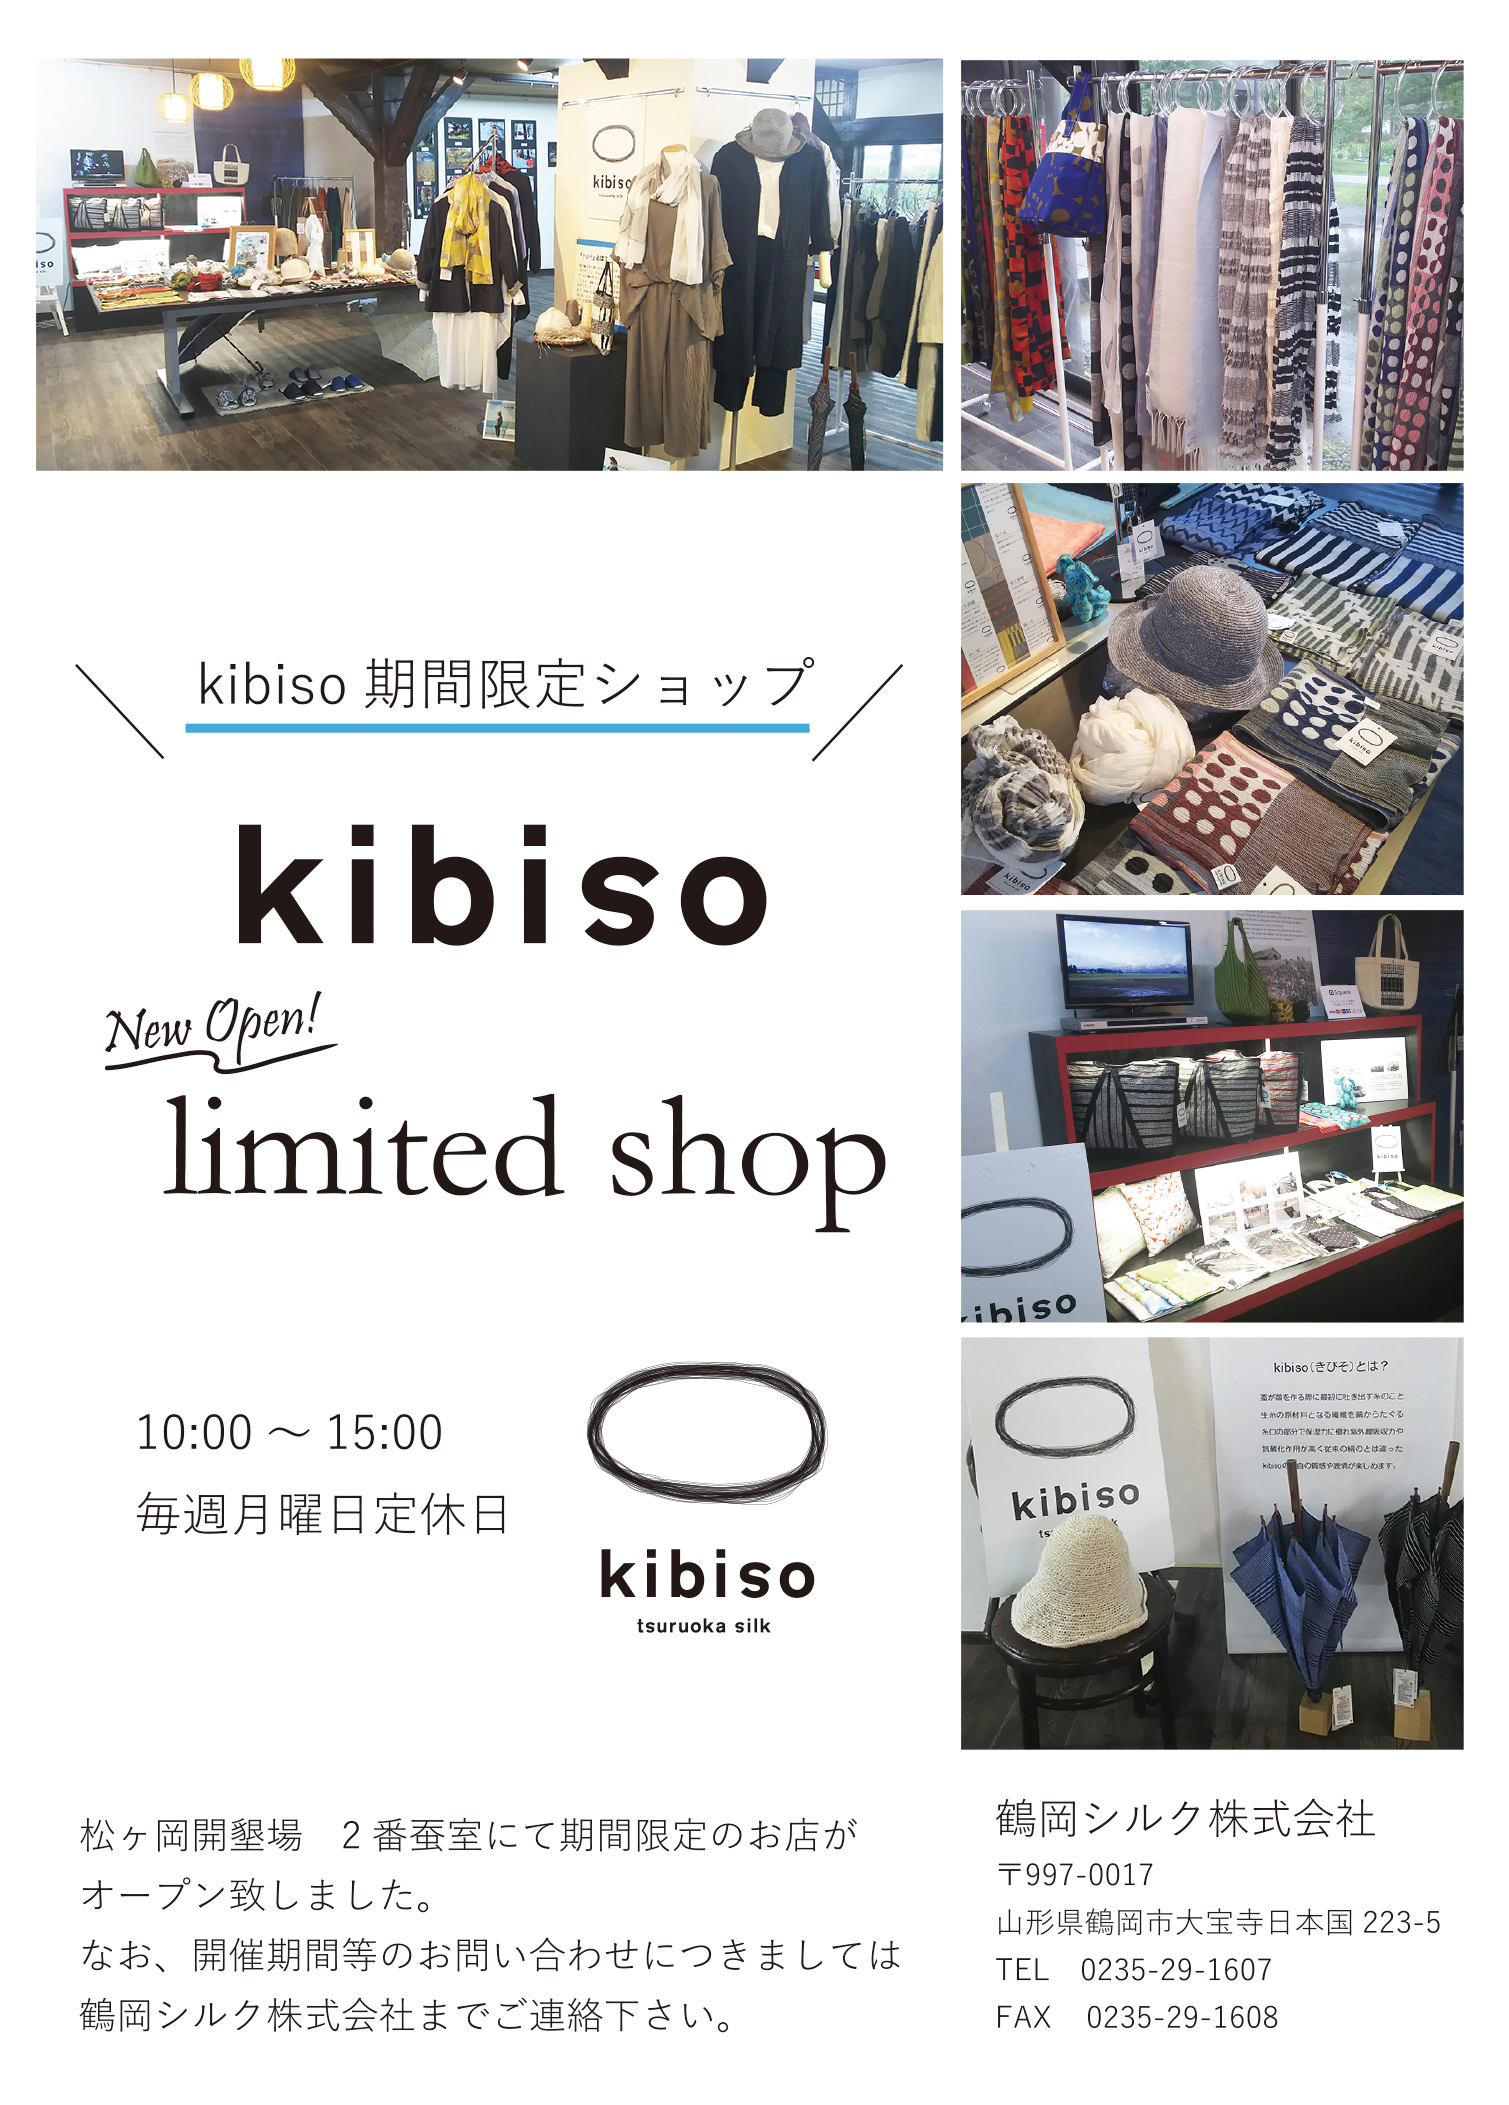 kibiso limited shopオープン